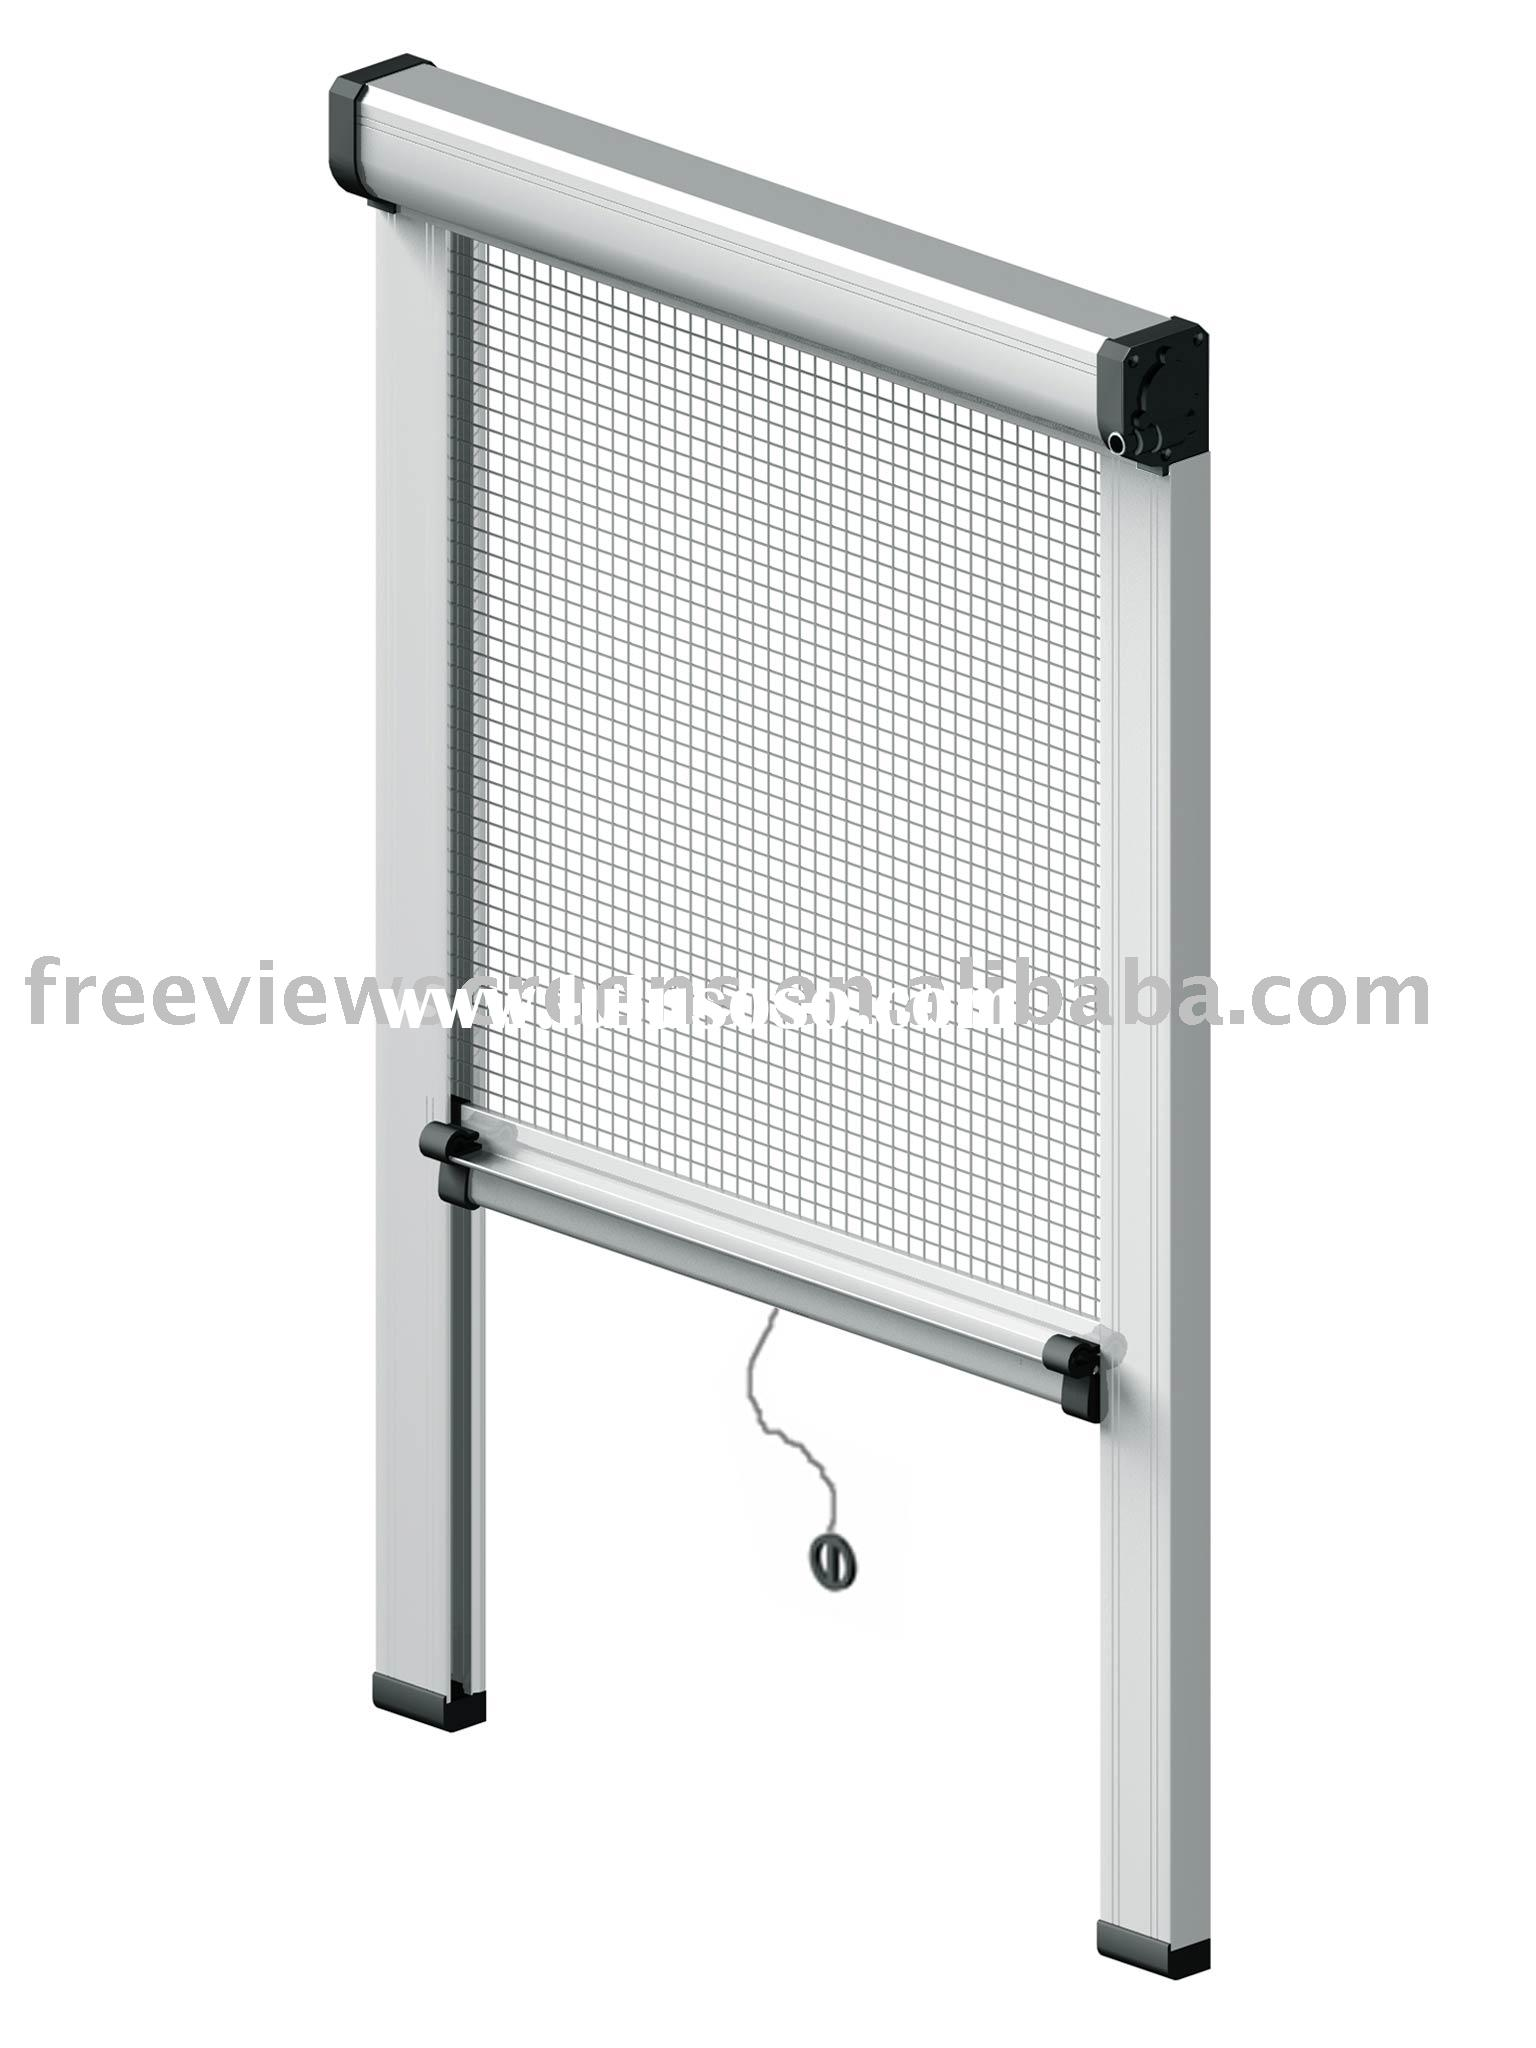 Roller insect screen window